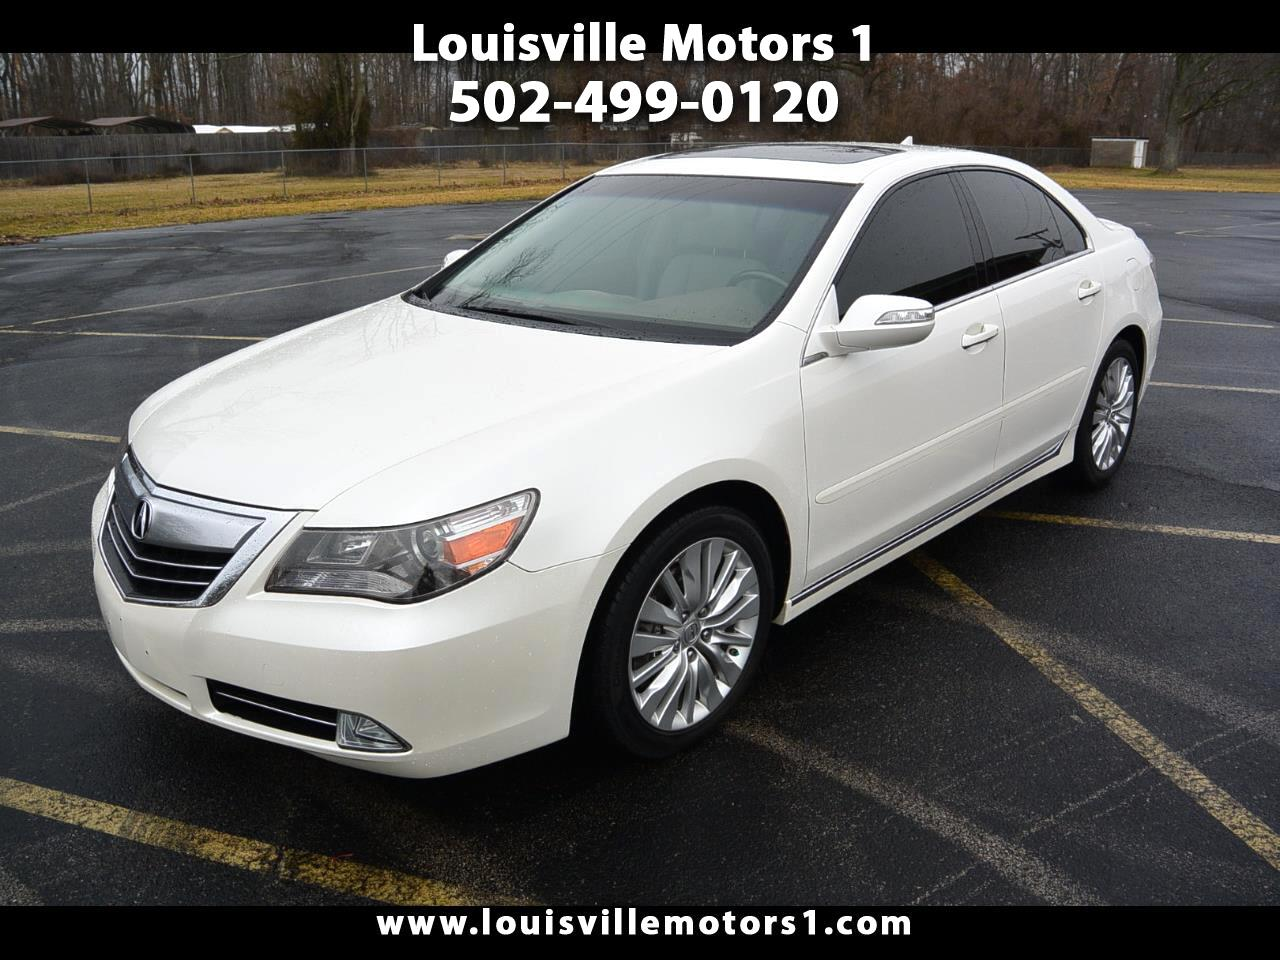 2012 Acura RL 4dr Sdn Advance Pkg